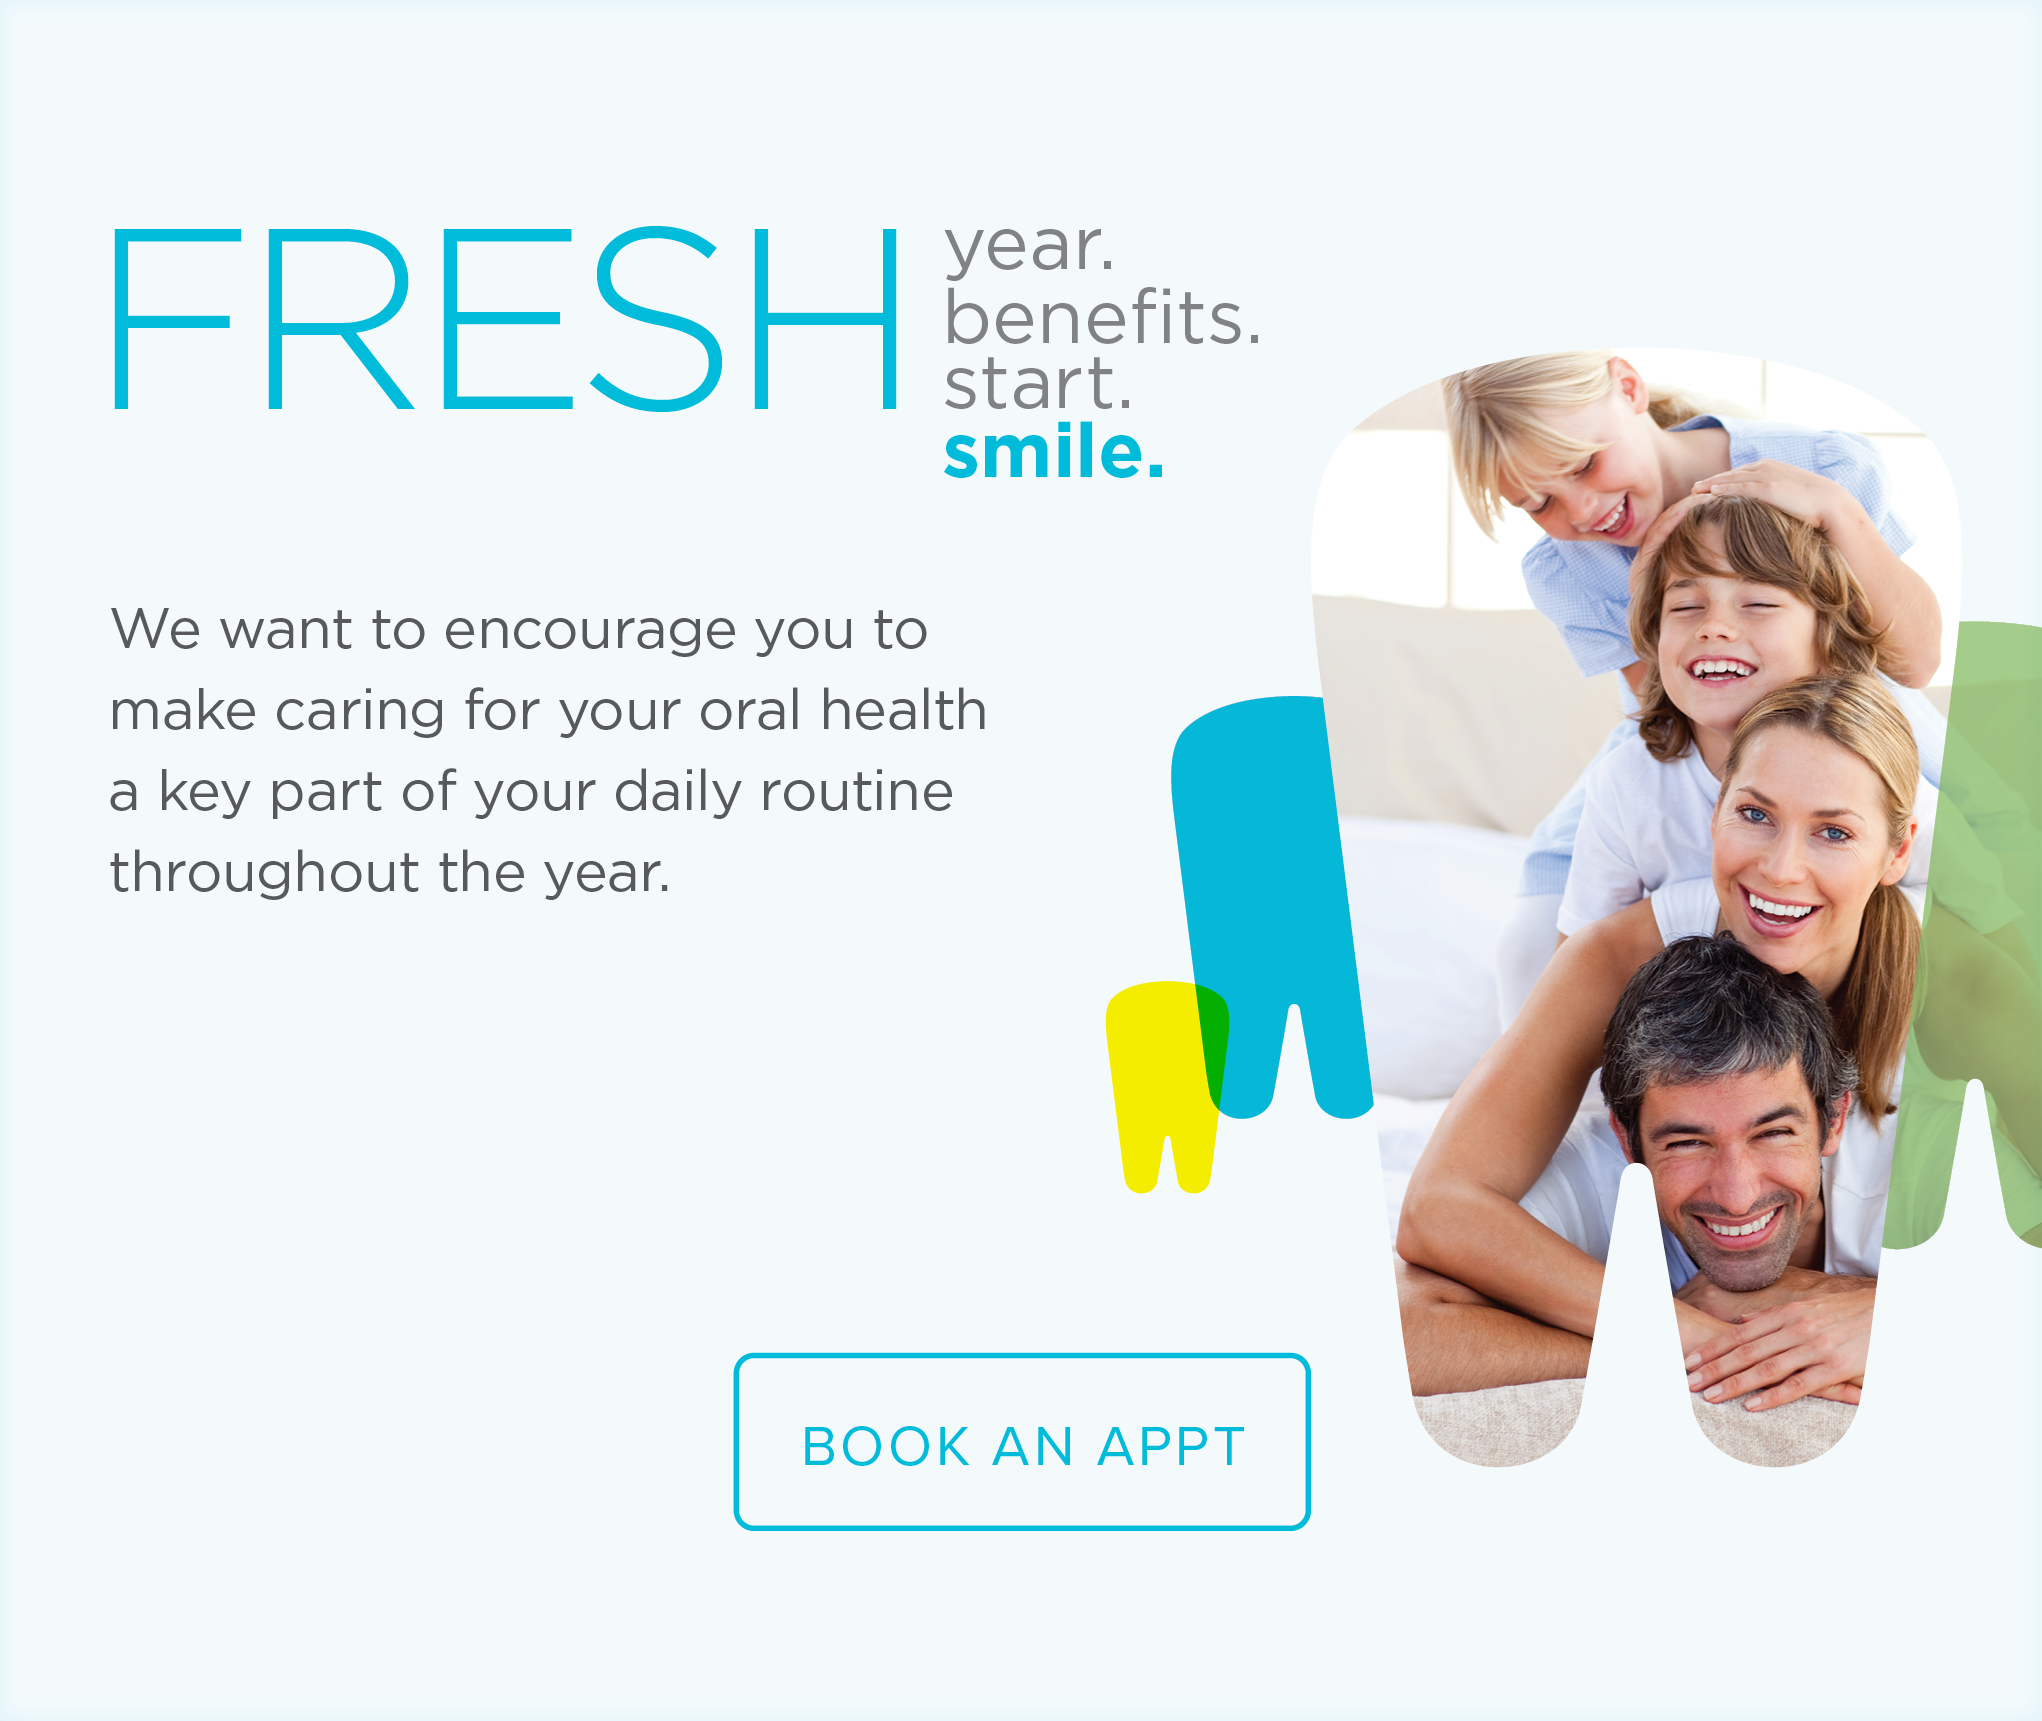 Longmont Modern Dentistry and Orthodontics - Make the Most of Your Benefits